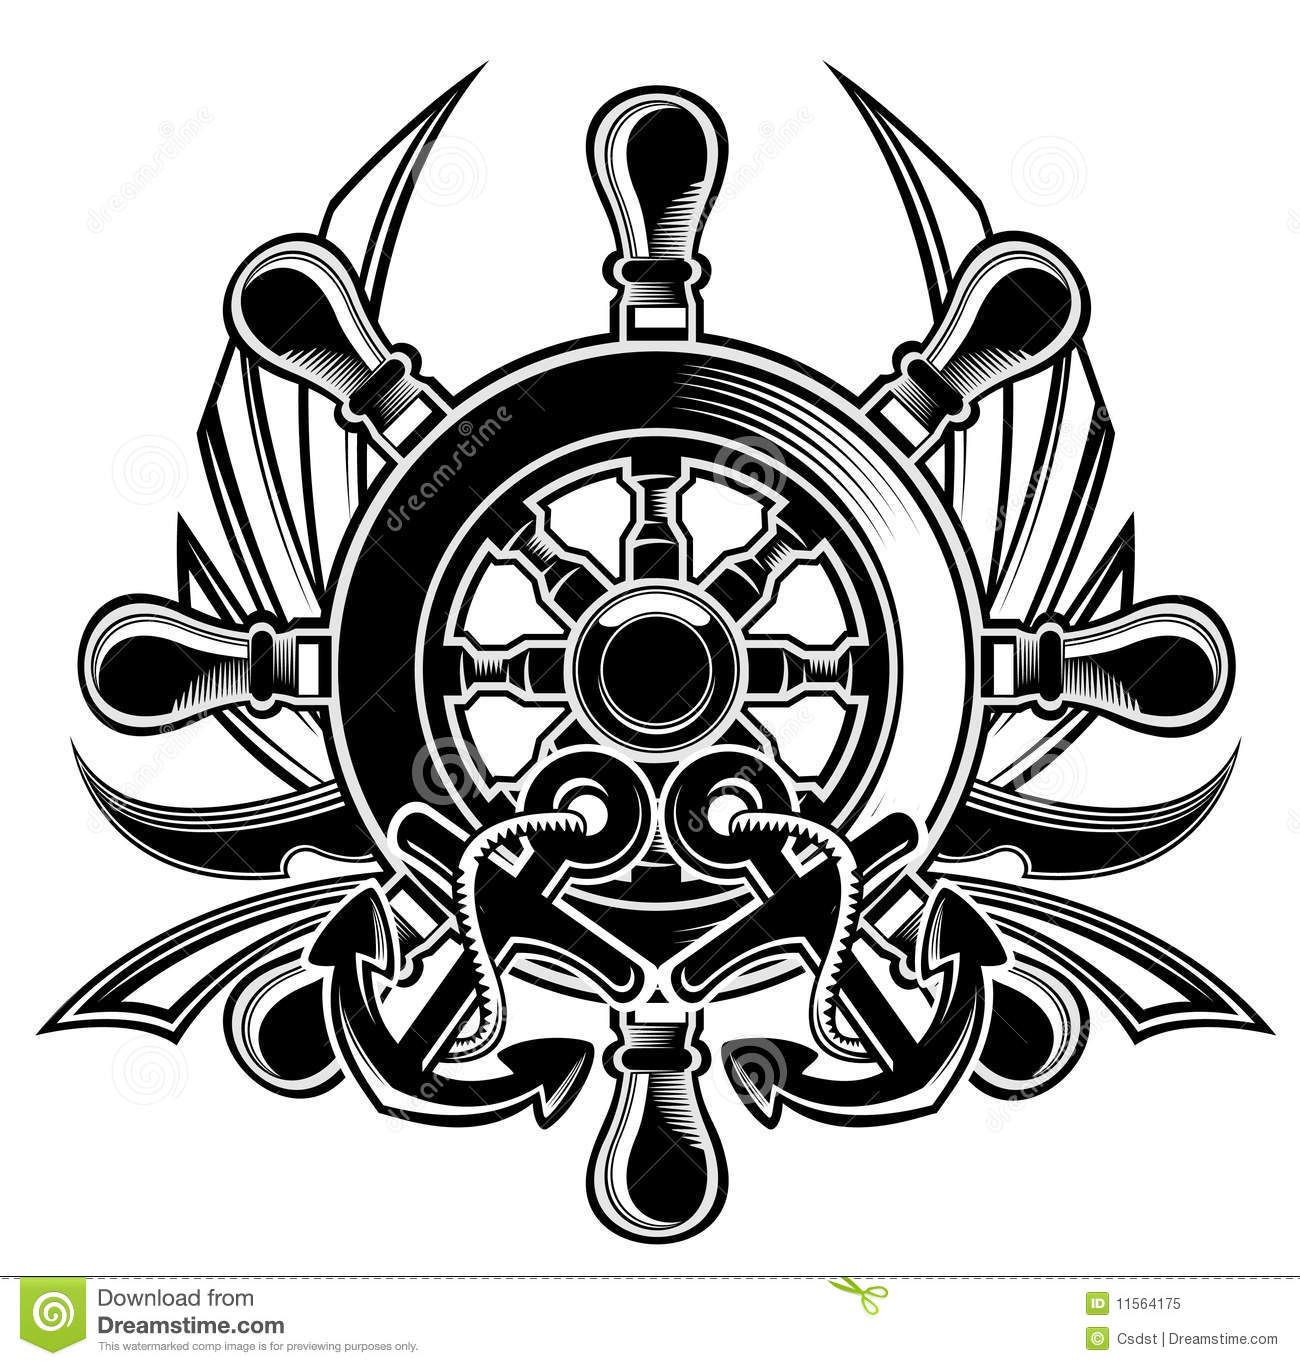 Ship Steering Wheel Shield Royalty Free Stock Photo   Image  11564175